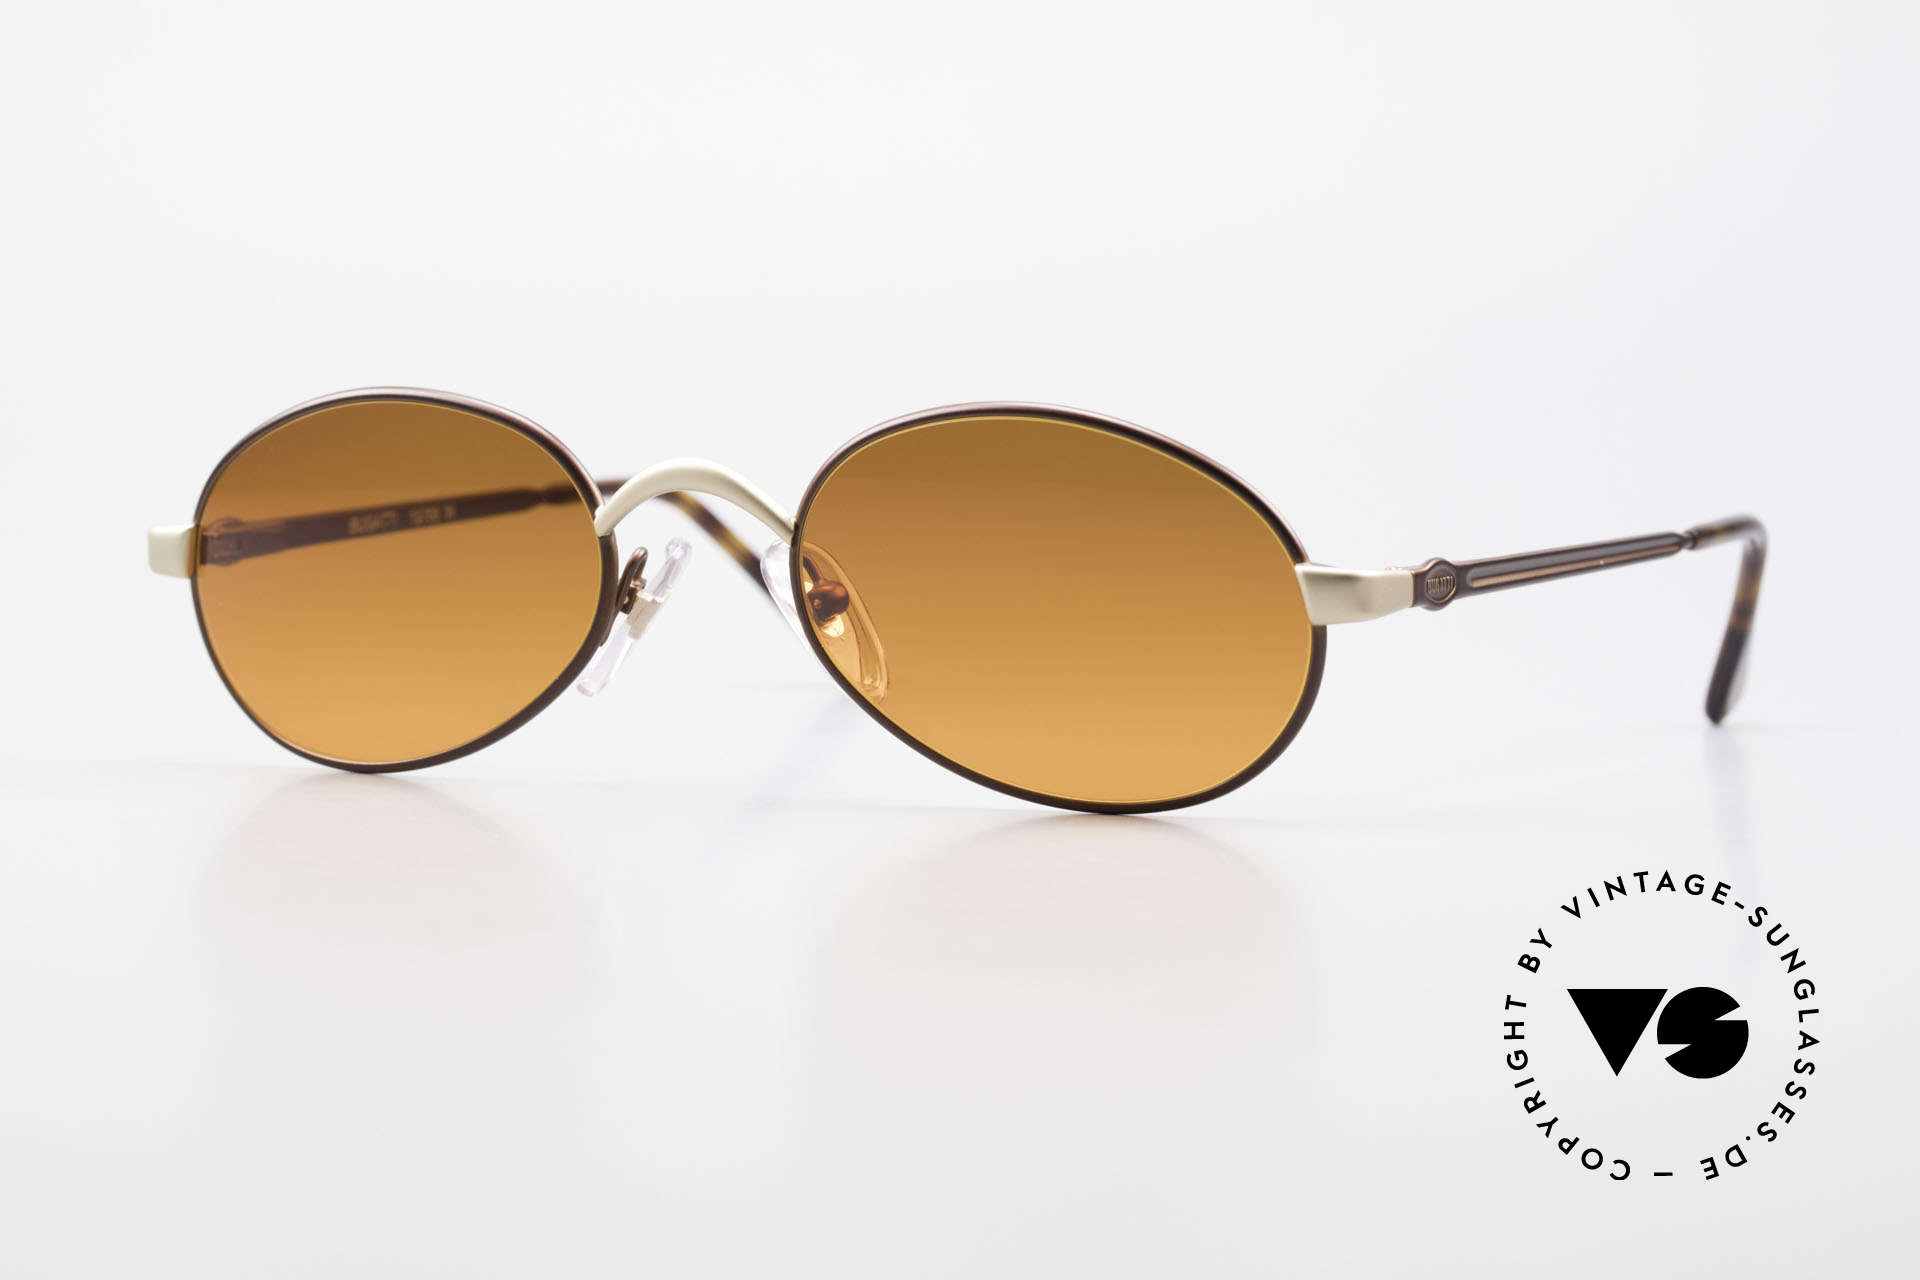 Bugatti 15769 Bronze Brown Metallic Frame, very elegant vintage designer sunglasses by BUGATTI, Made for Men and Women